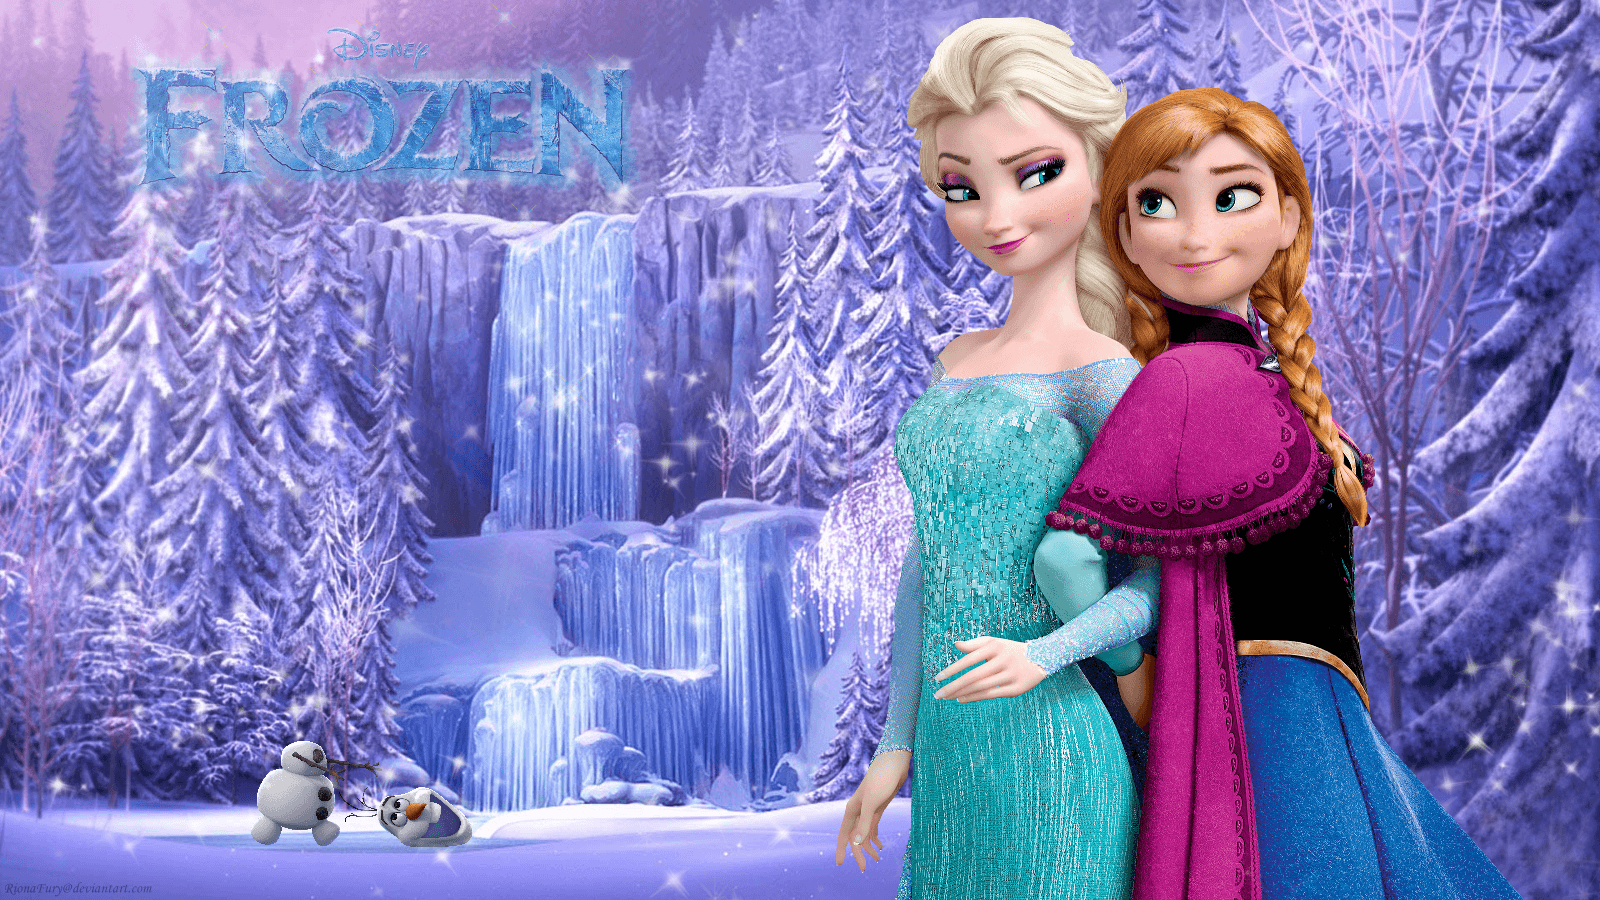 Frozen Disney Wallpapers - Wallpaper Cave